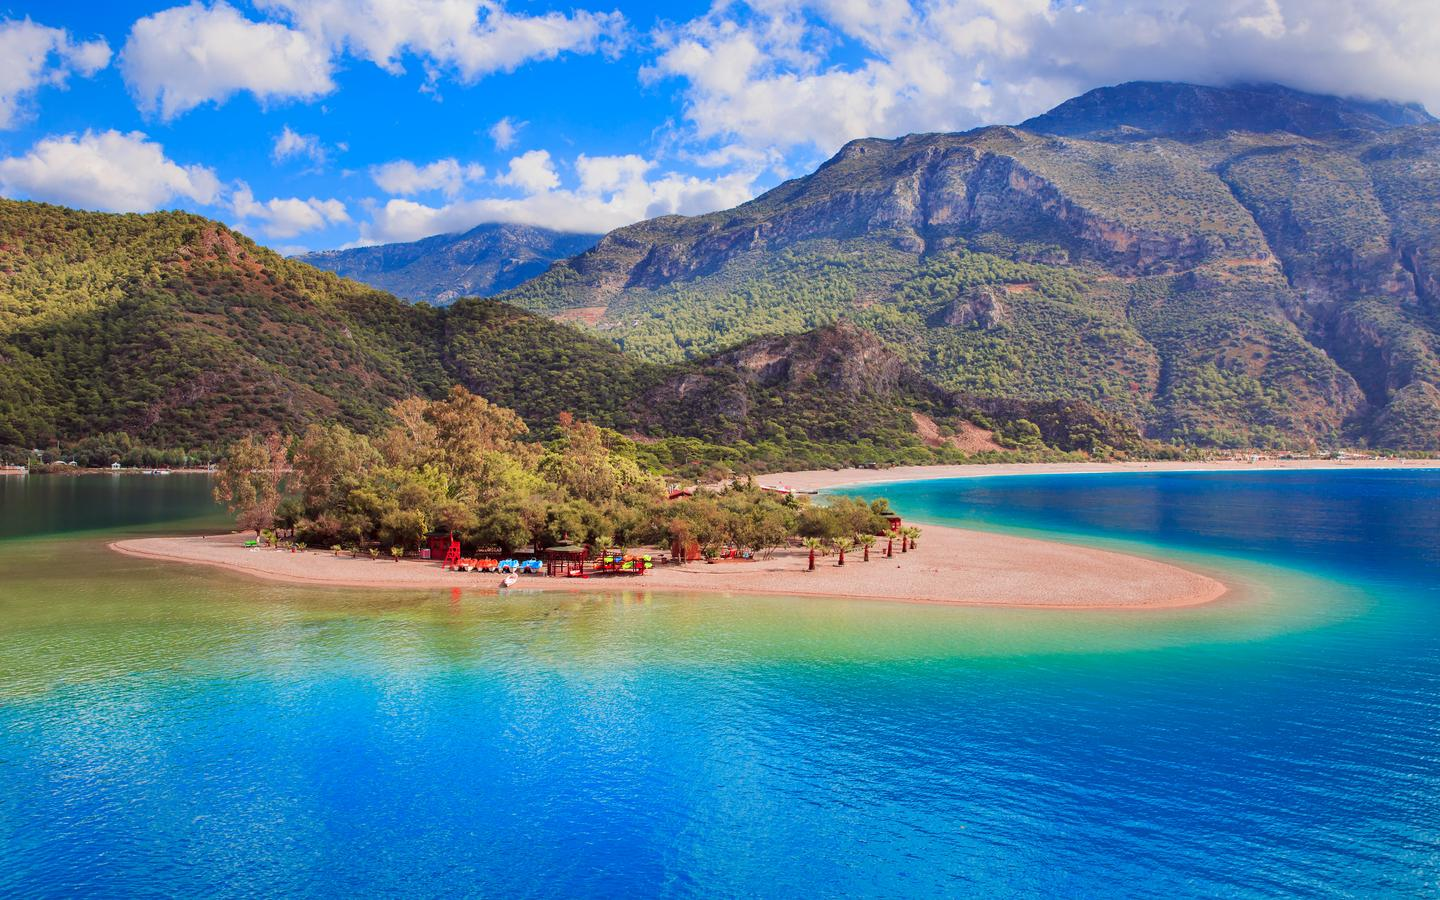 Hotels near Ölüdeniz Plaji (Ölüdeniz) from $17/night - KAYAK